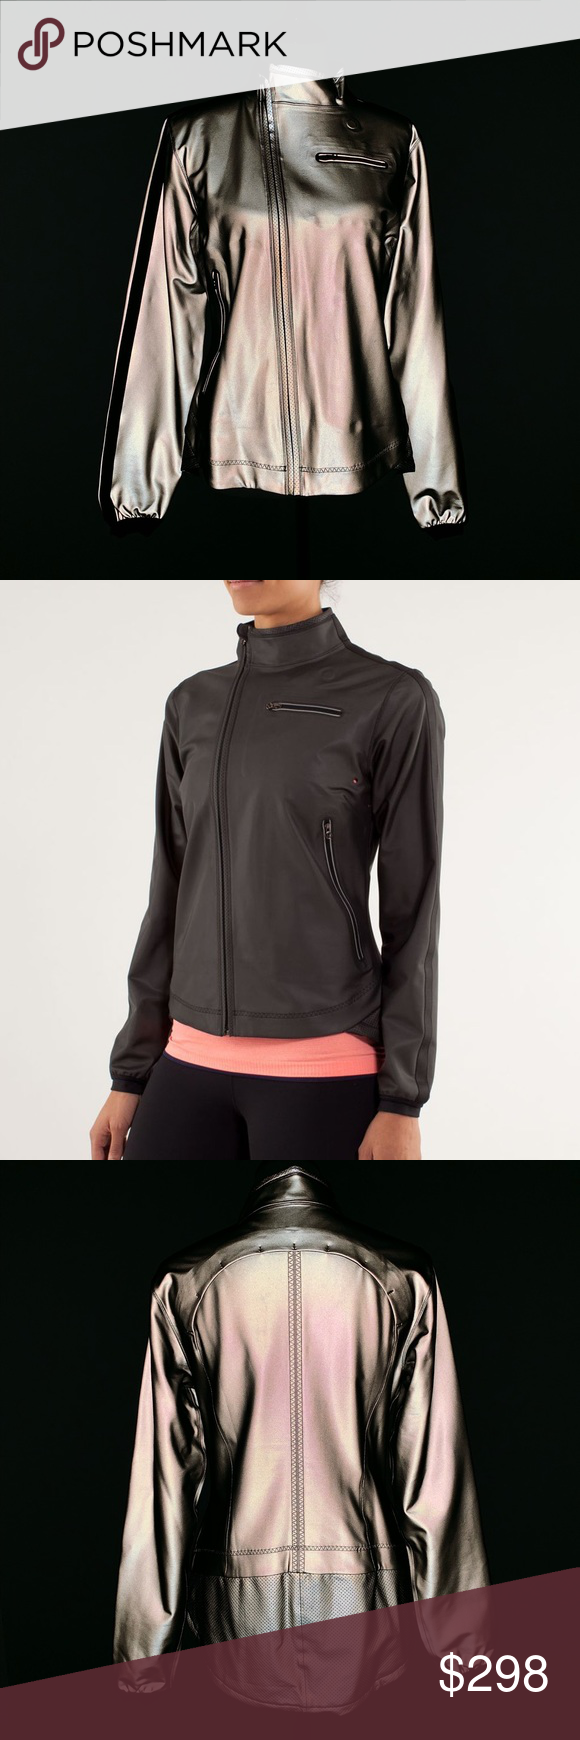 •new• Rare LULULEMON Run Reflective Jacket Reflective